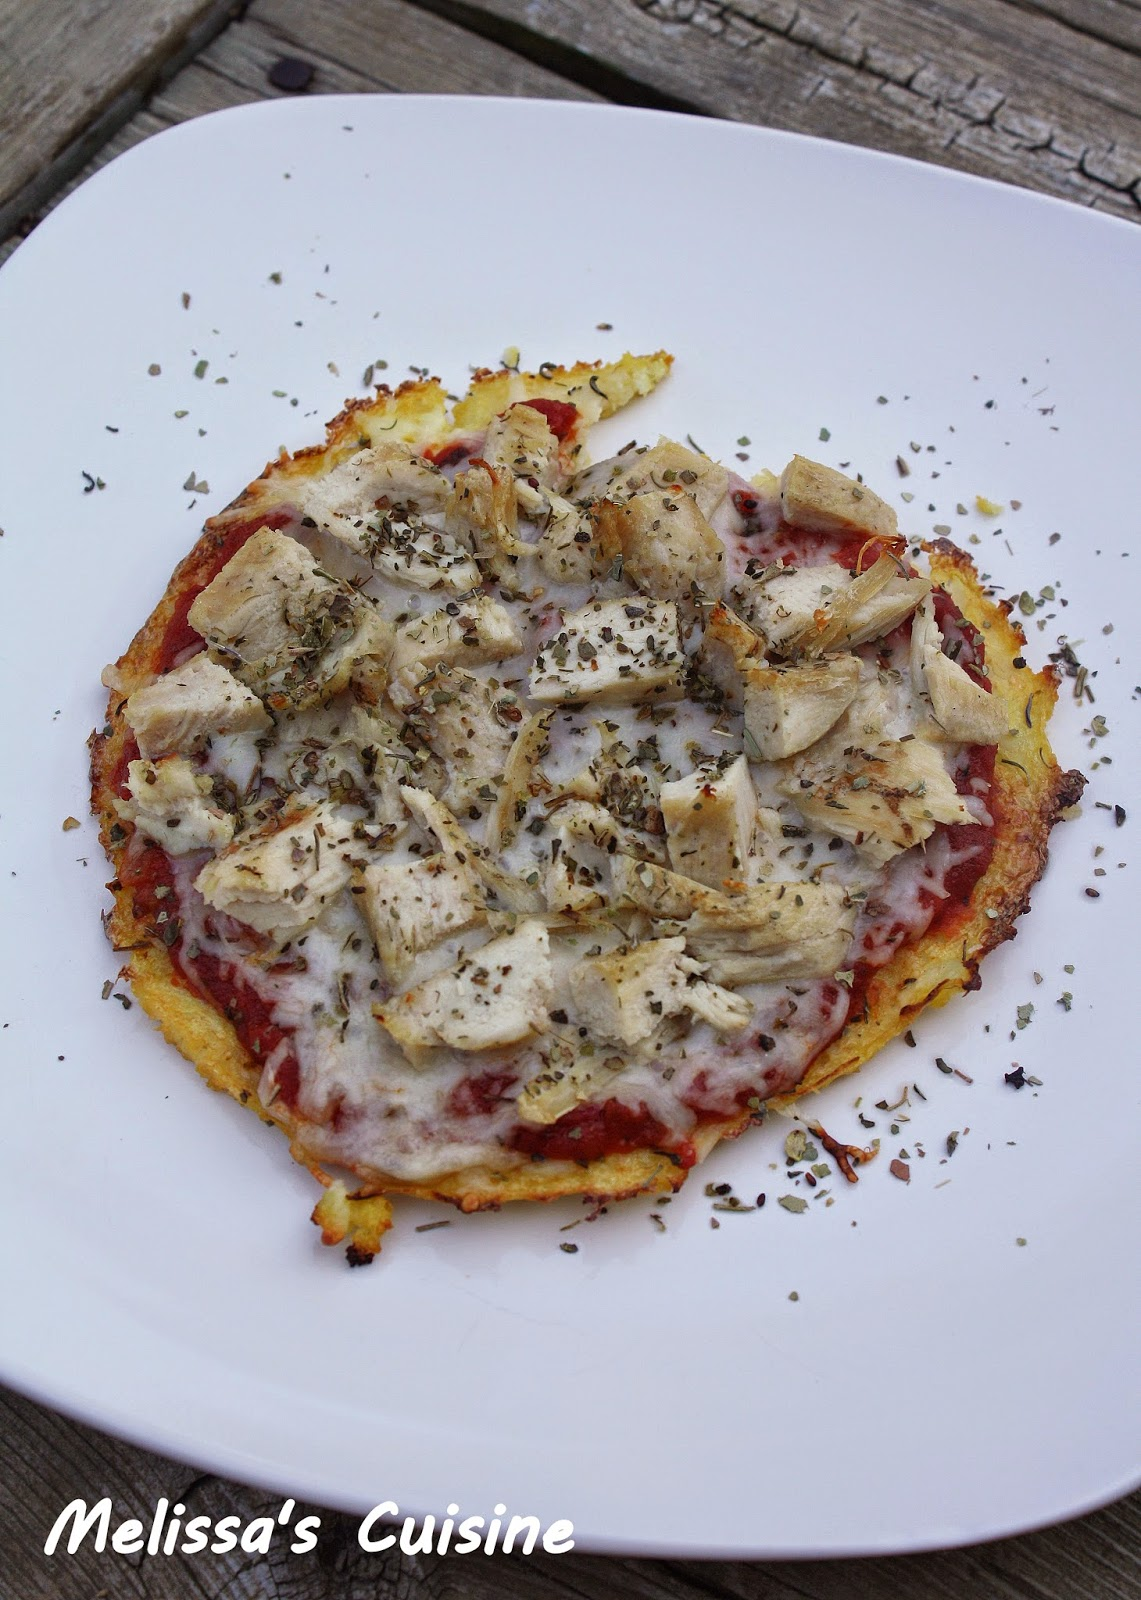 Melissa's Cuisine: Cauliflower Pizza Crust